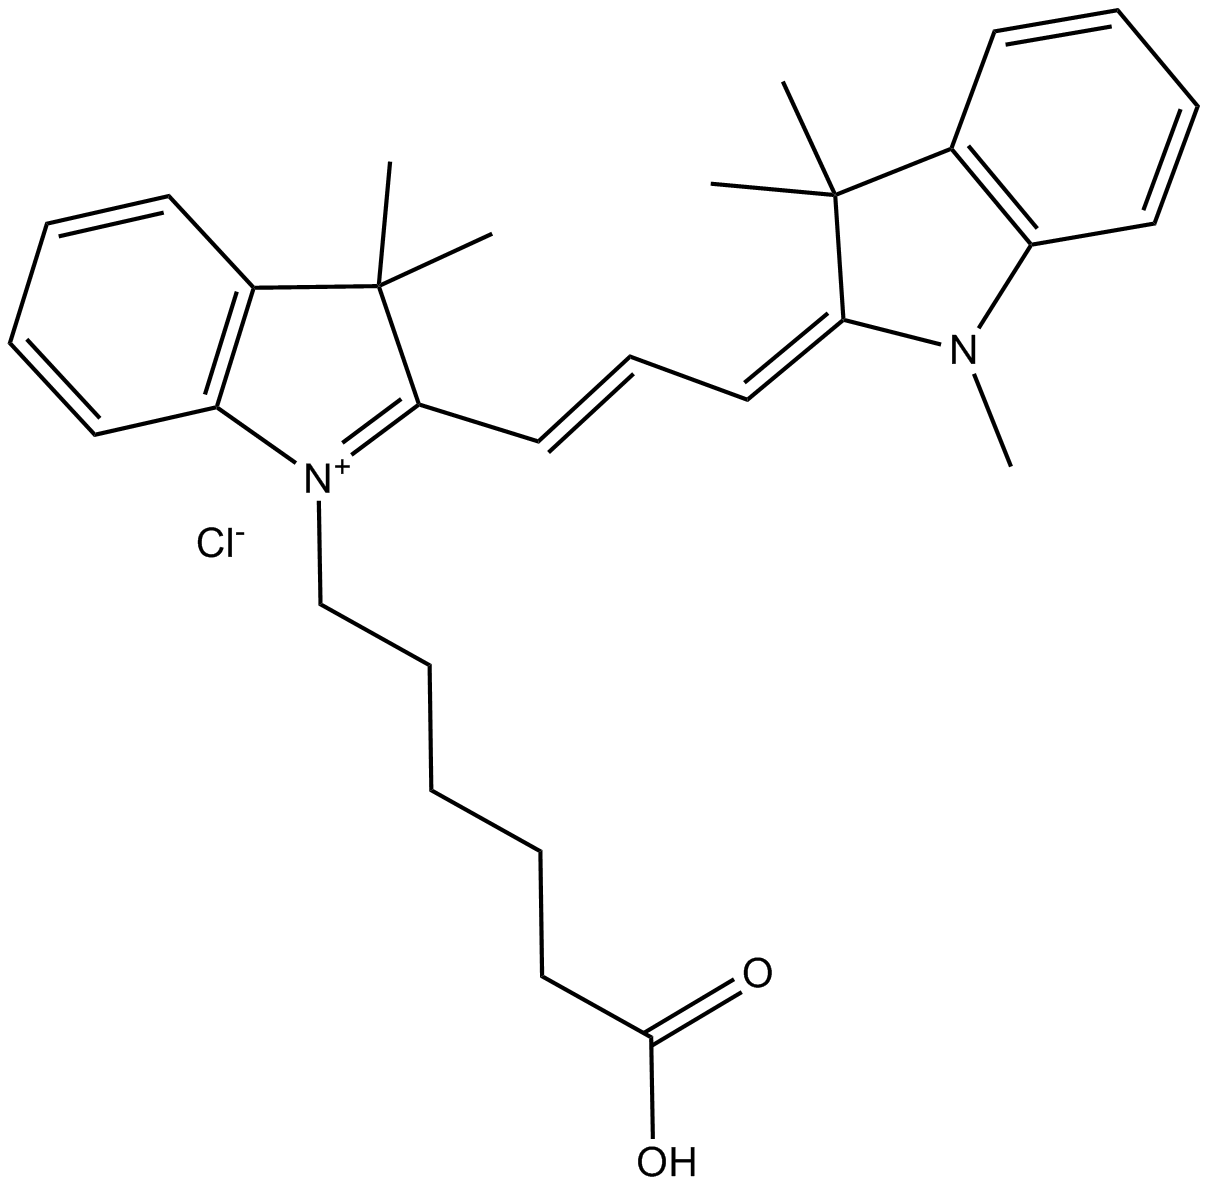 Cy3 carboxylic acid (non-sulfonated)